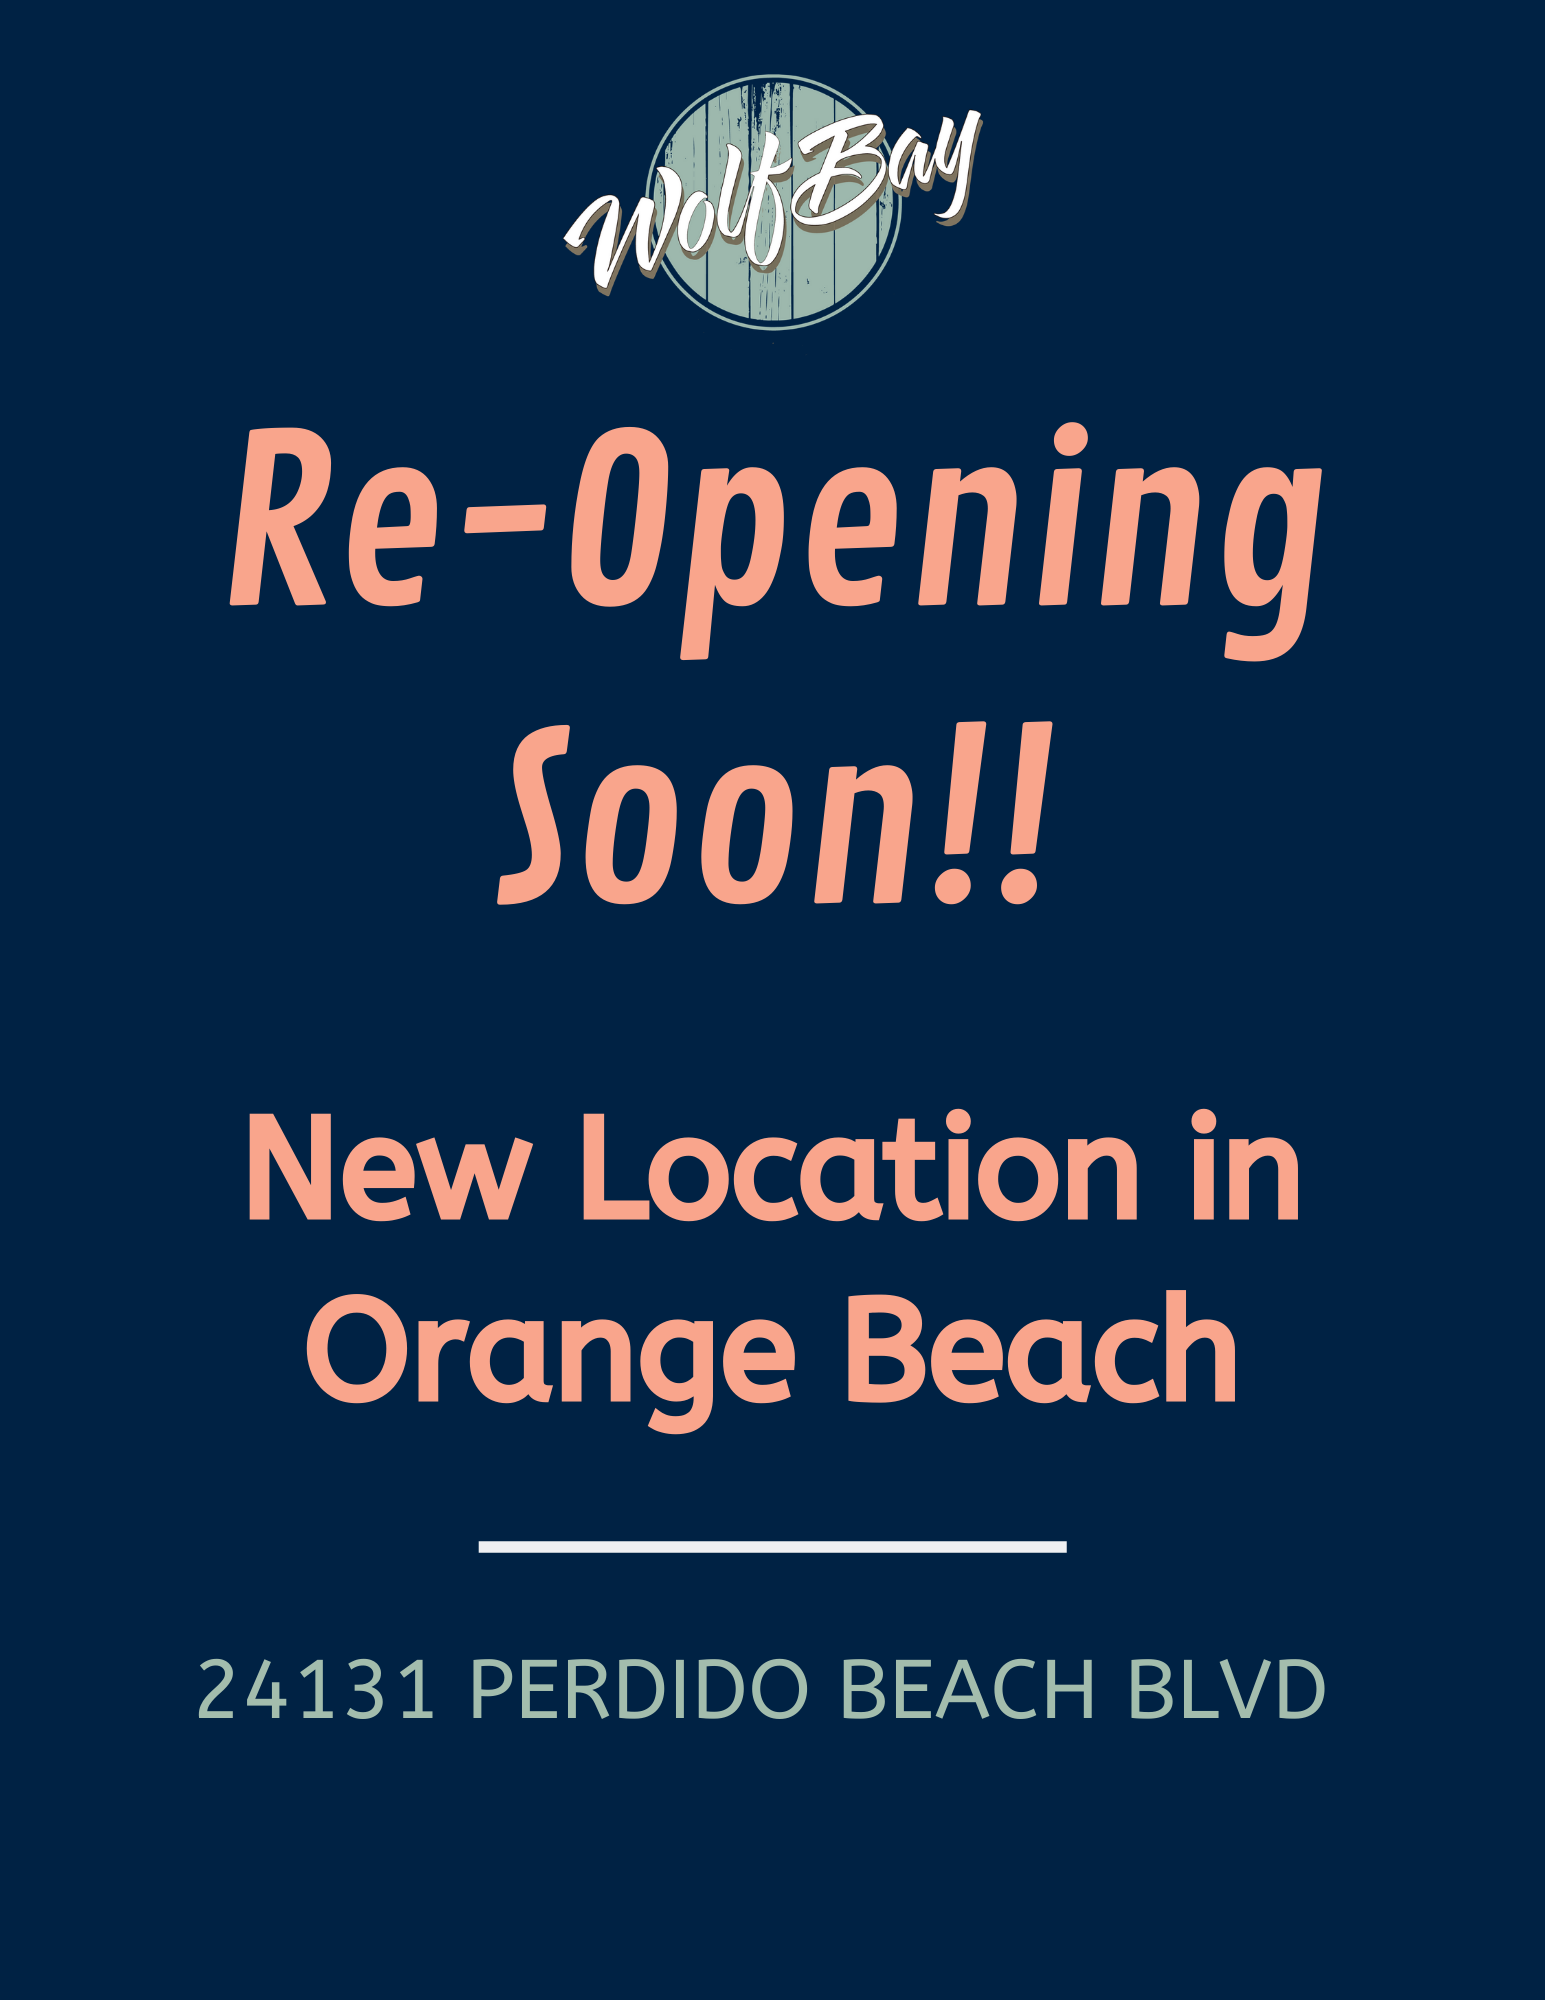 Orange Beach Re-opening in new location